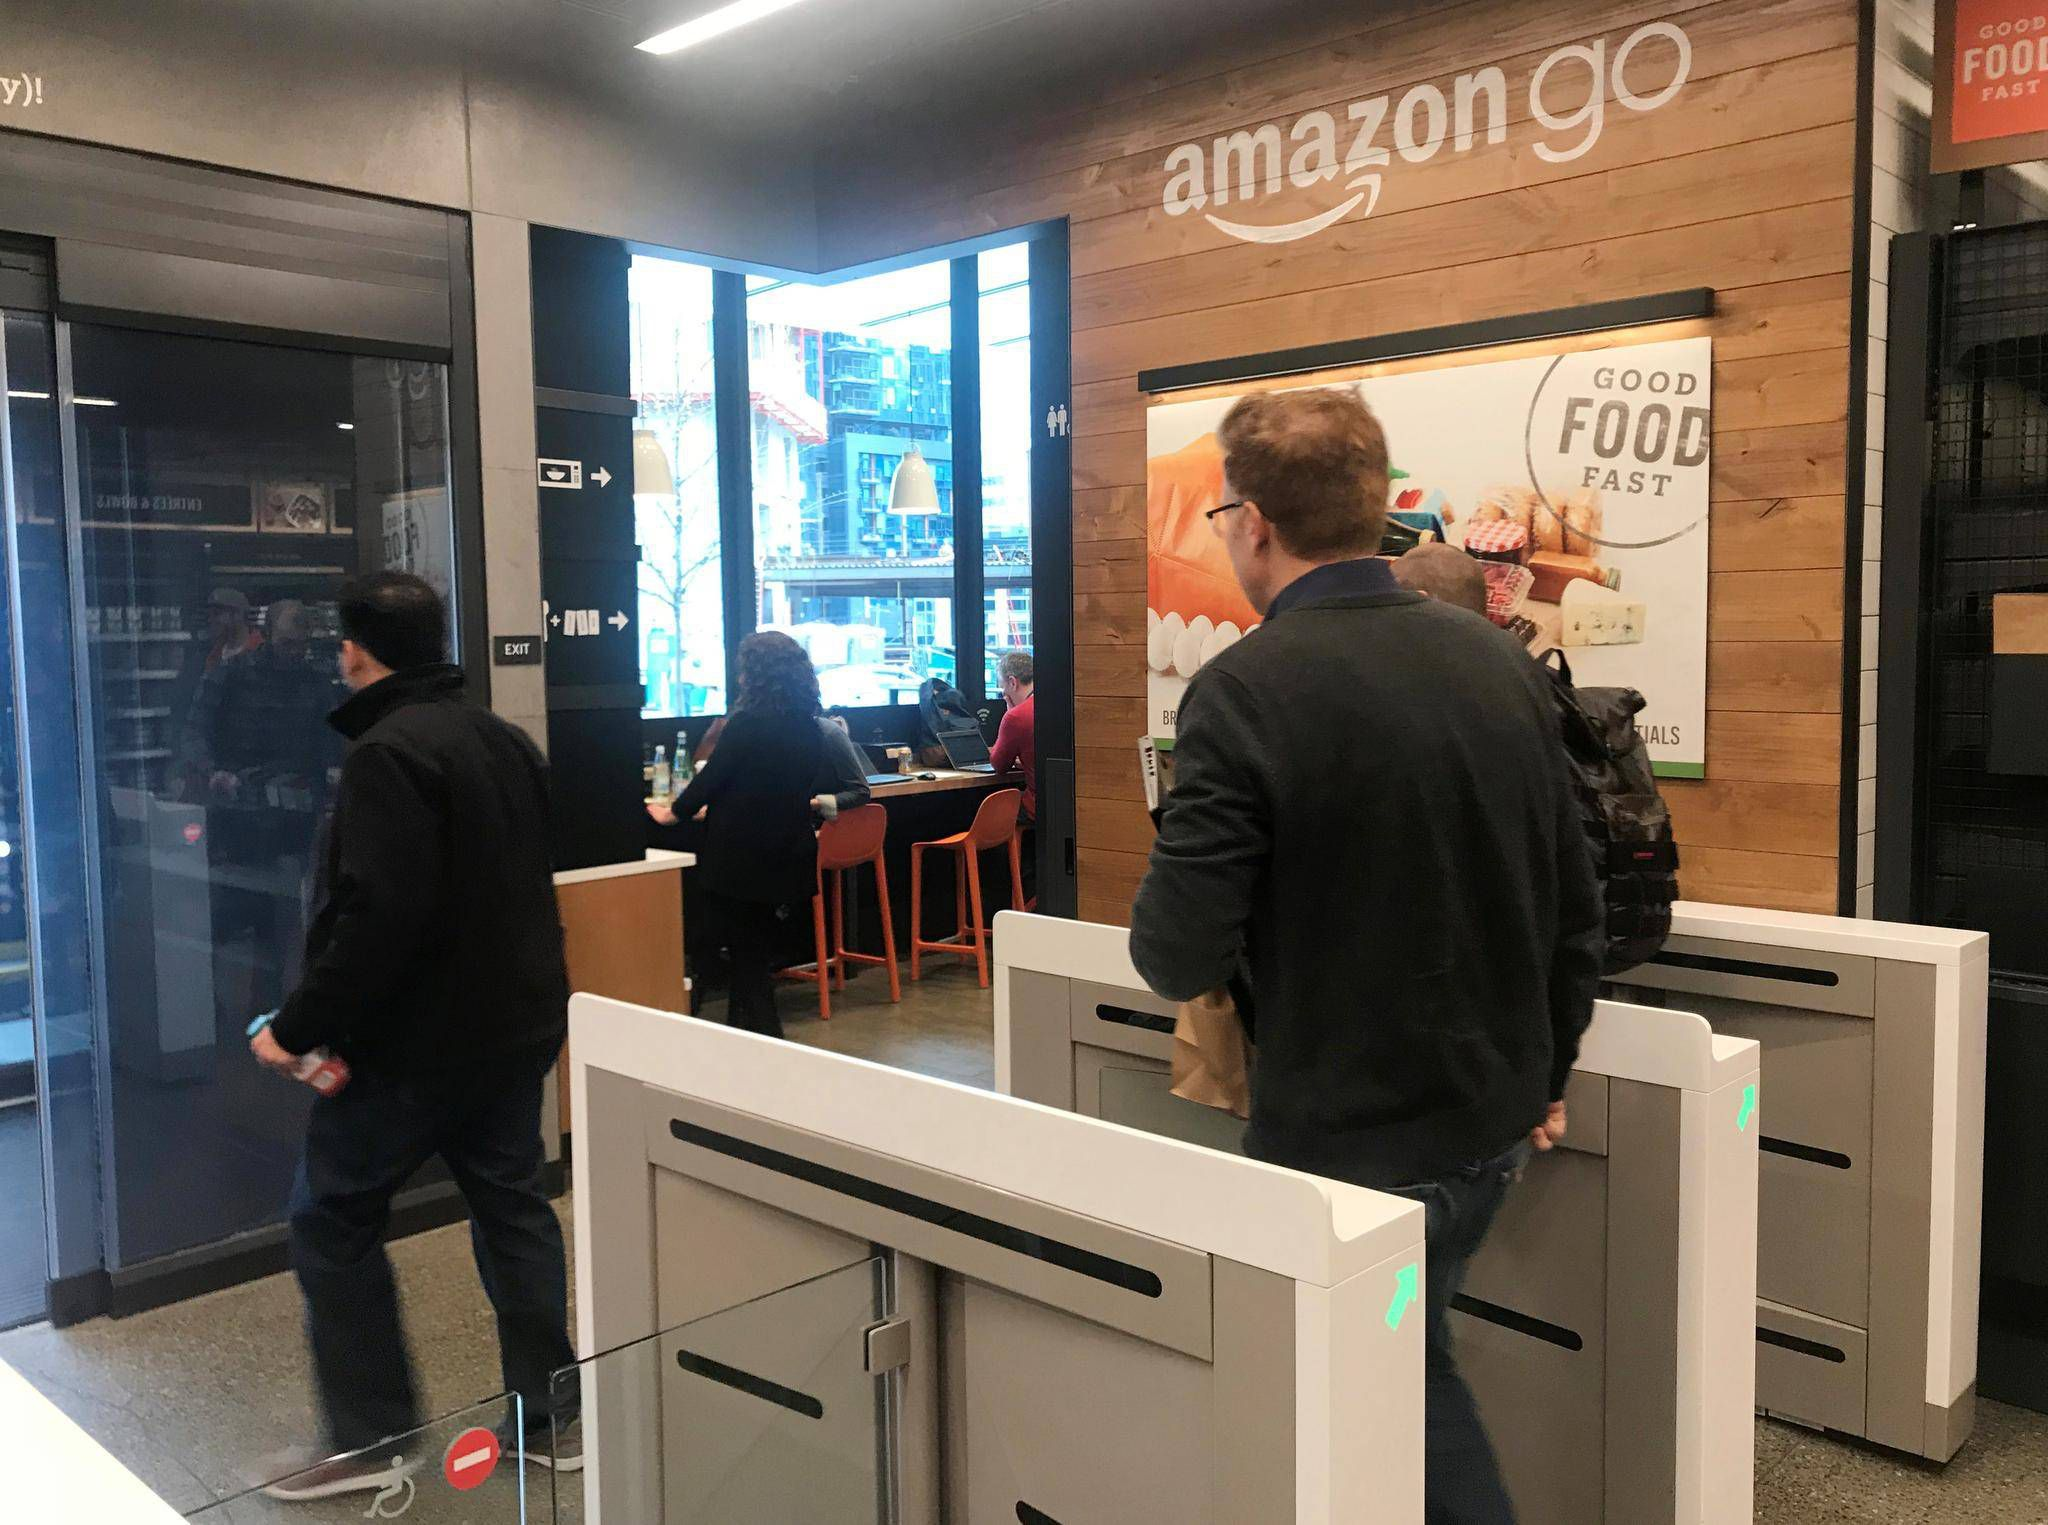 1221b21b2081 Amazon Go tests retail waters with cashier-less convenience store ...